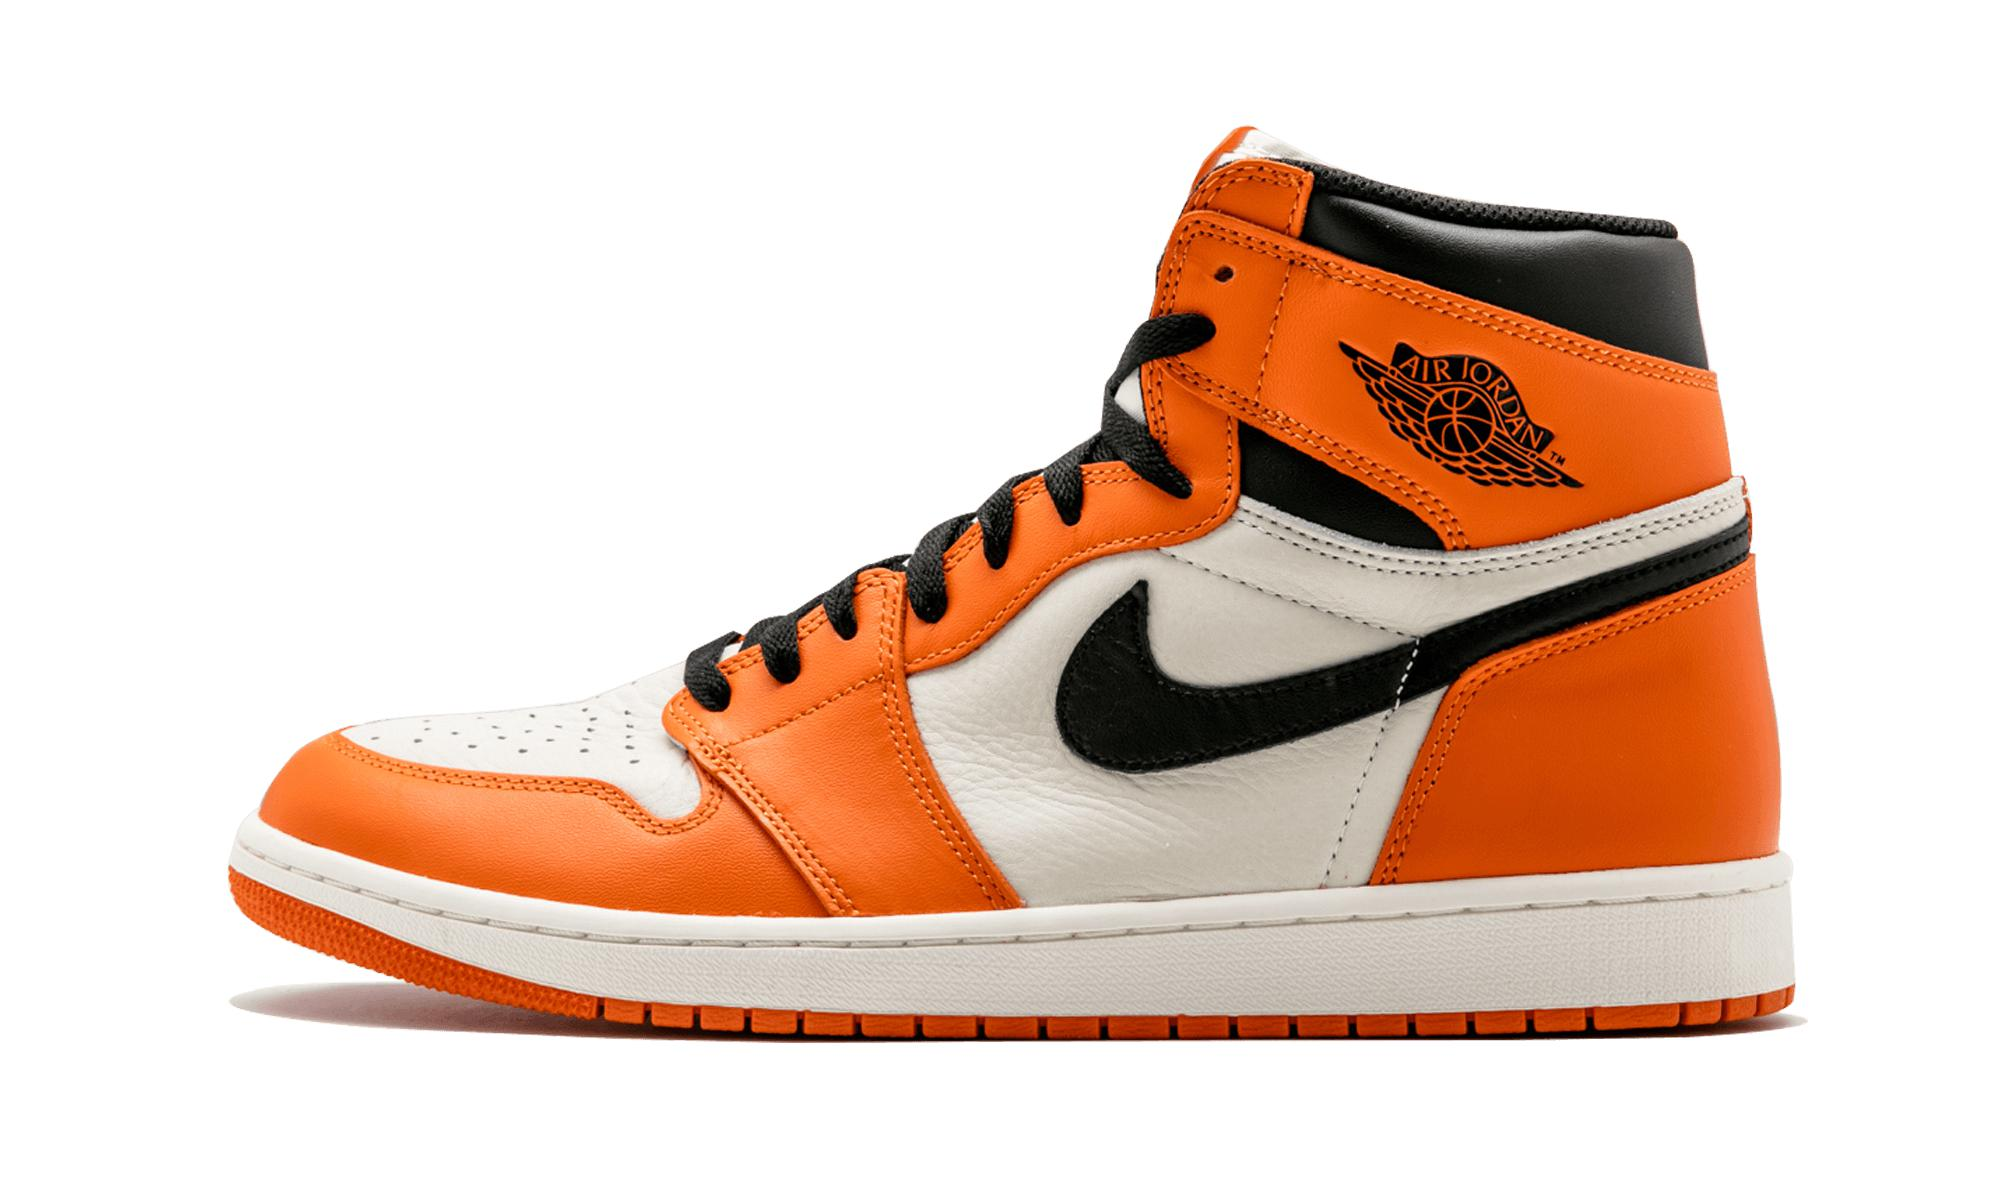 bd5f36db021 Nike Air 1 Retro High Og Bg in Orange for Men - Save 38% - Lyst